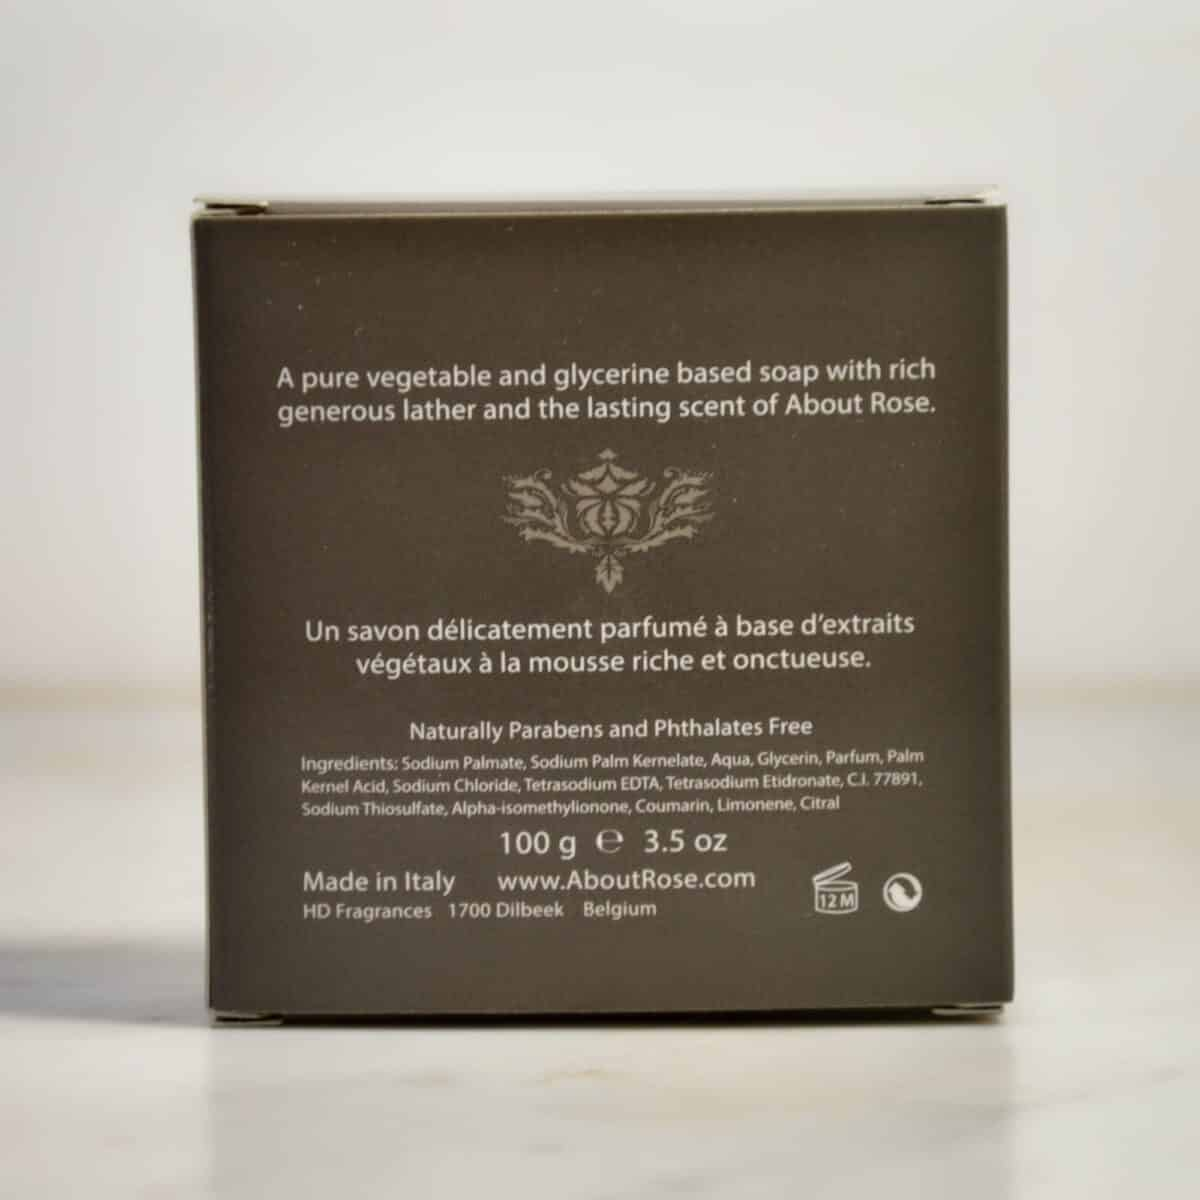 About Rose Imperial Luxury Soap Box ingredients